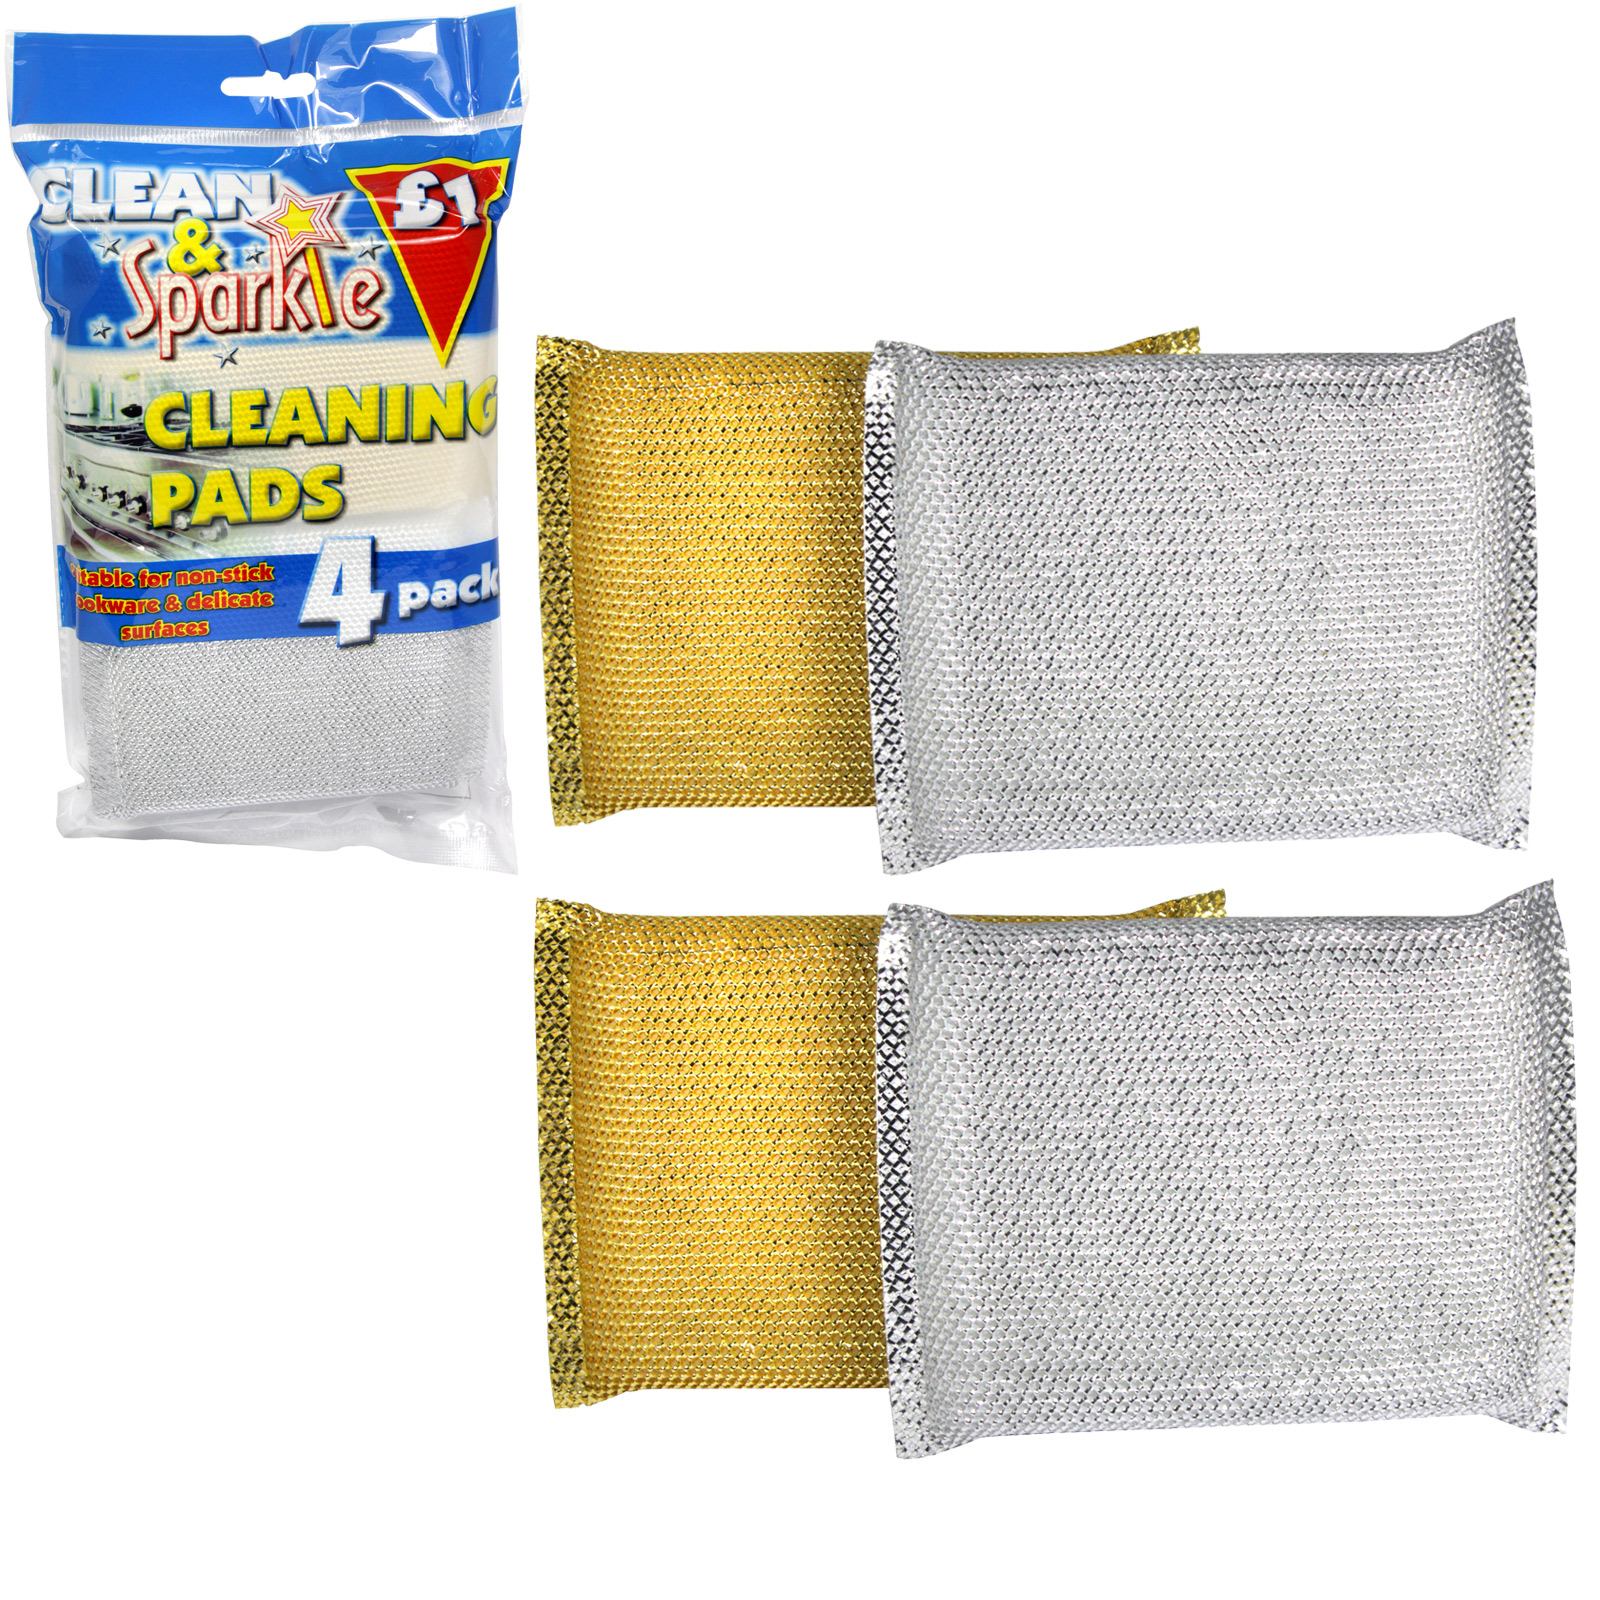 CLEAN+SPARKLE £1 CLEANING PADS 4PK